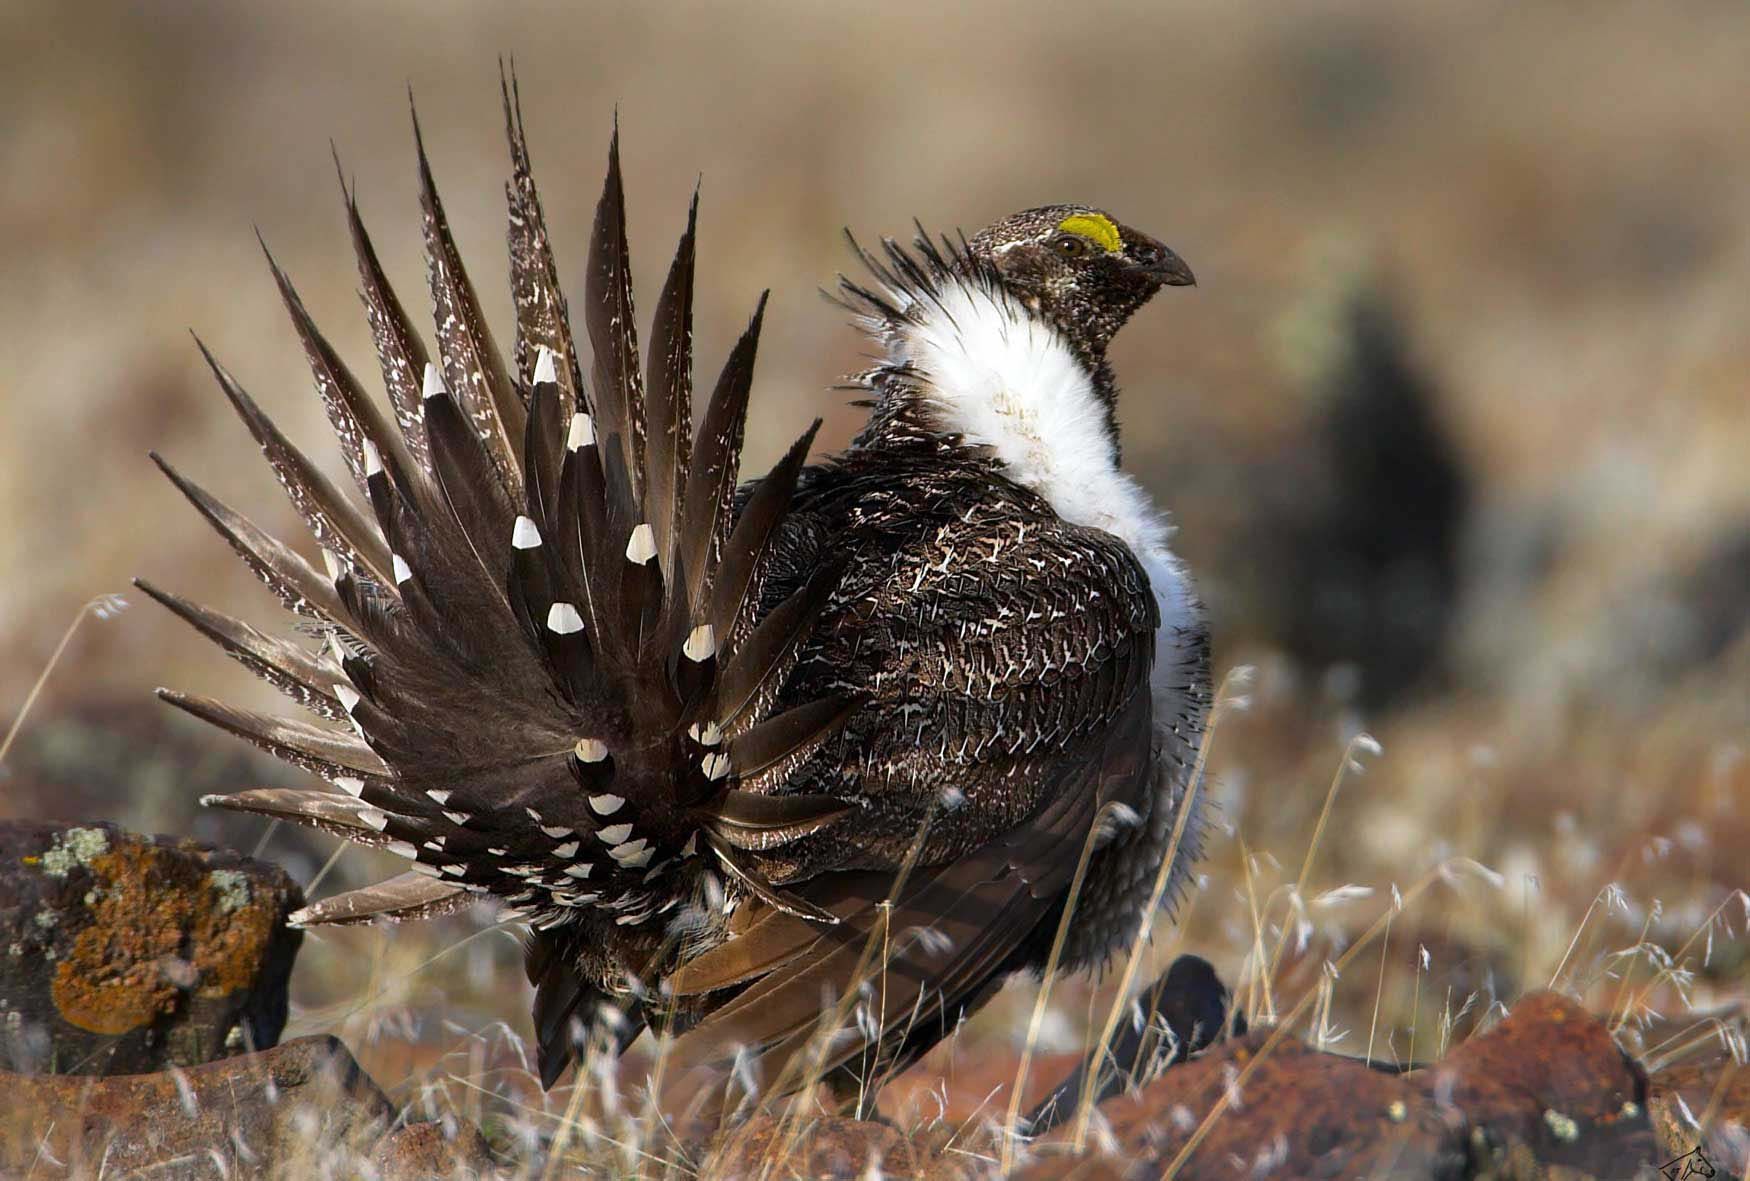 the Greater Sage-Grouse.